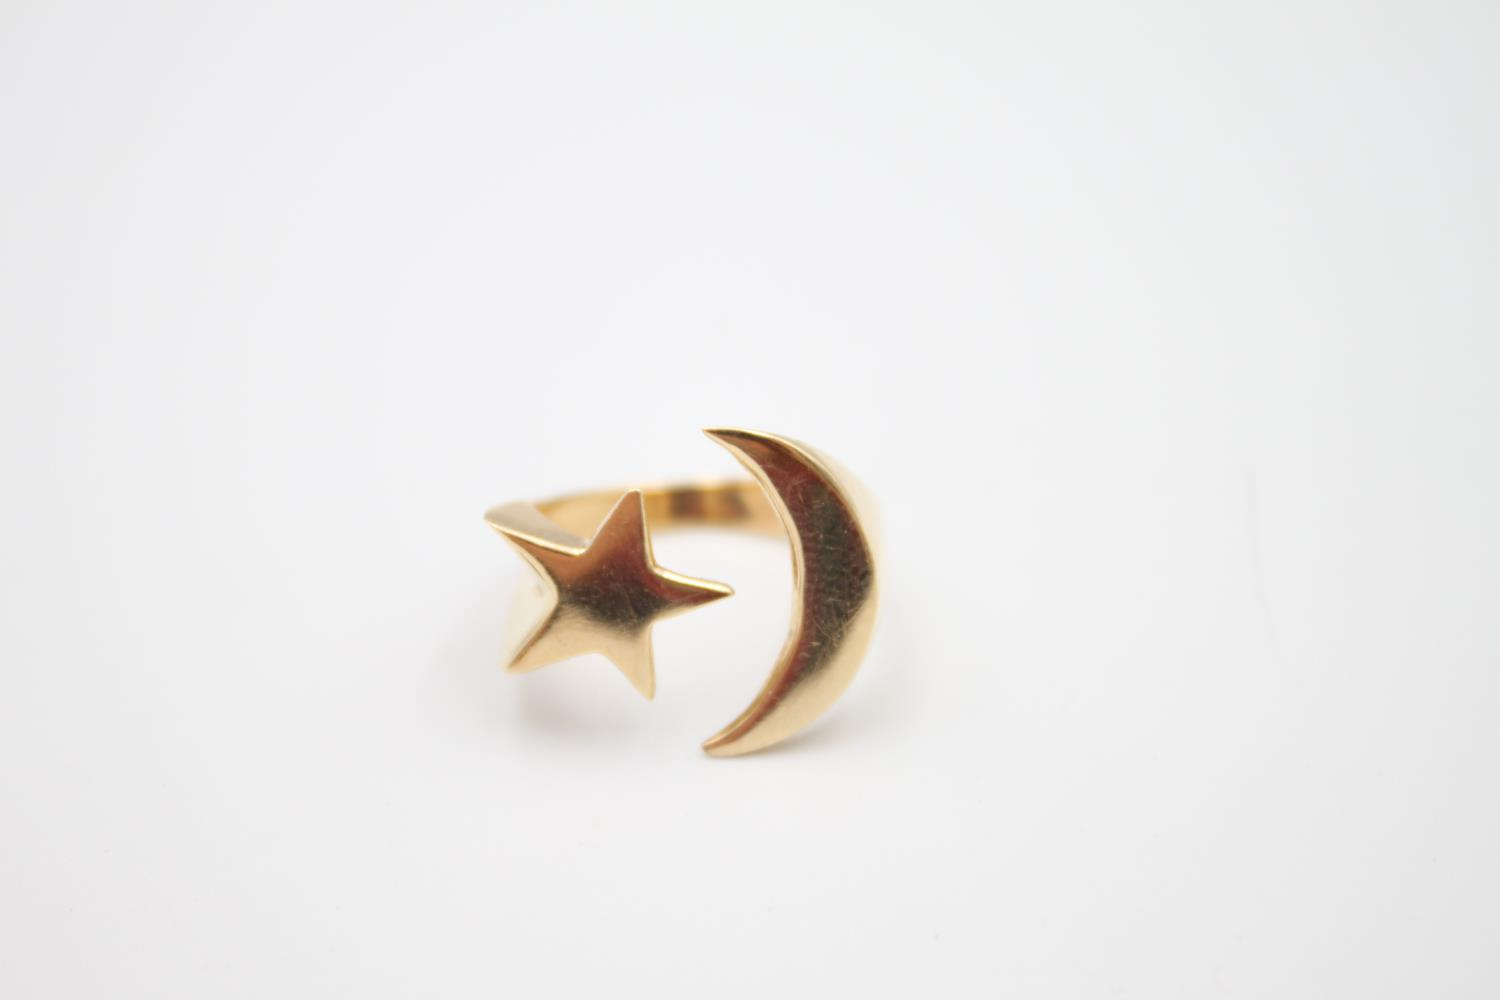 14ct gold moon and star signet style ring 4.8g Size K